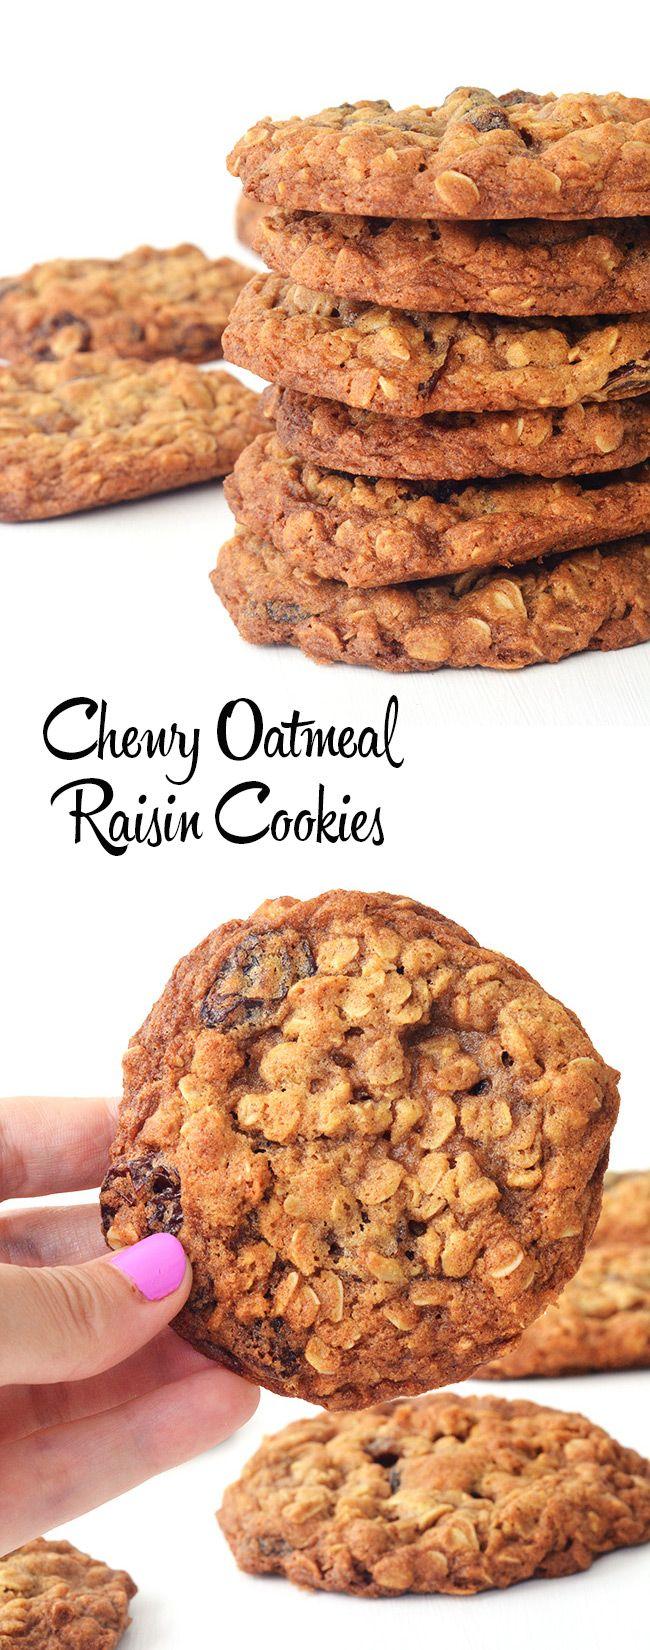 The BEST big and chewy Oatmeal Raisin Cookies I have ever had!